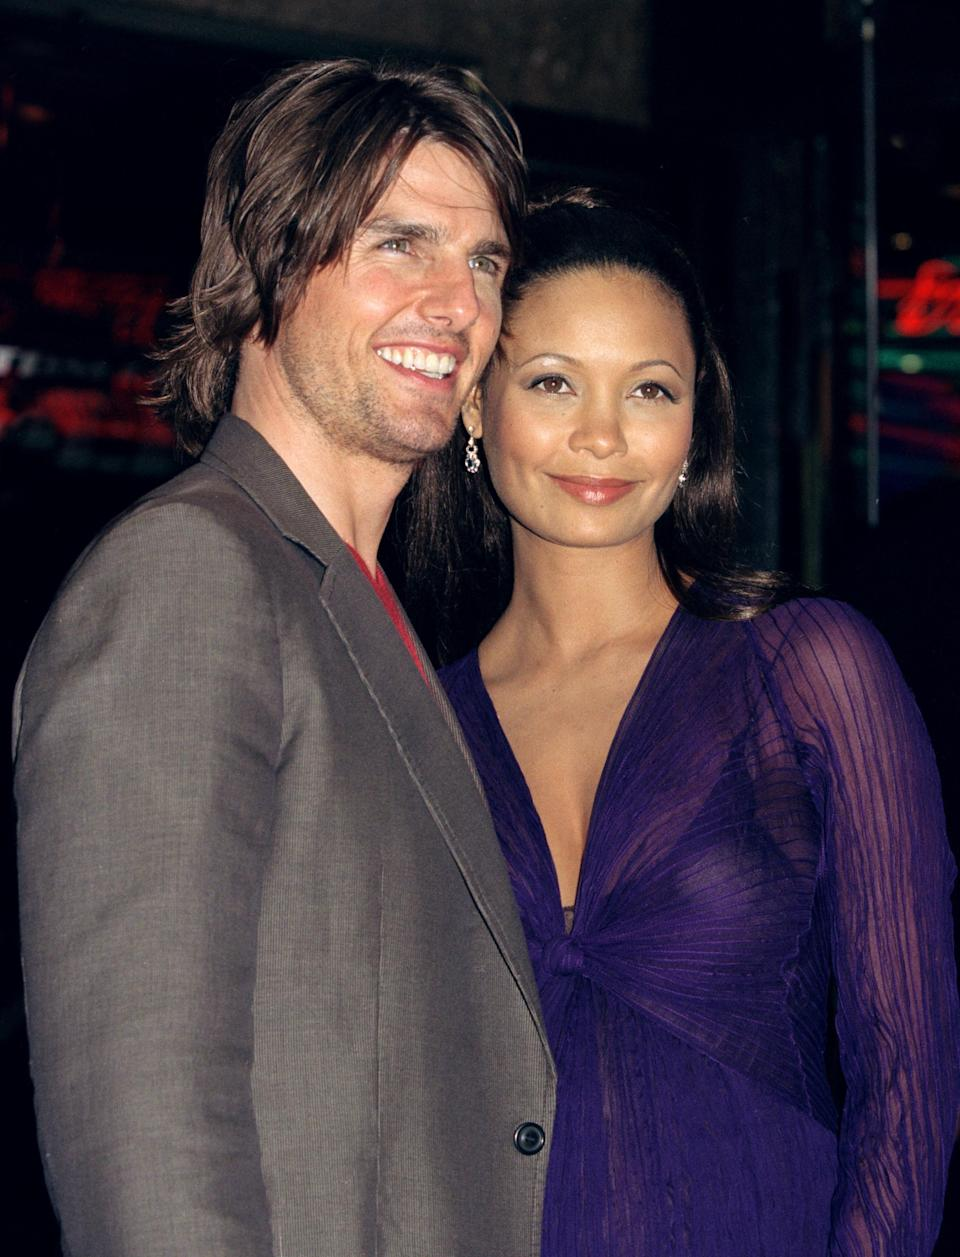 Tom Cruise & Thandie Newton Attend The 'Mission:Impossible-2' Premiere In London'S West End. (Photo by Antony Jones/UK Press via Getty Images)